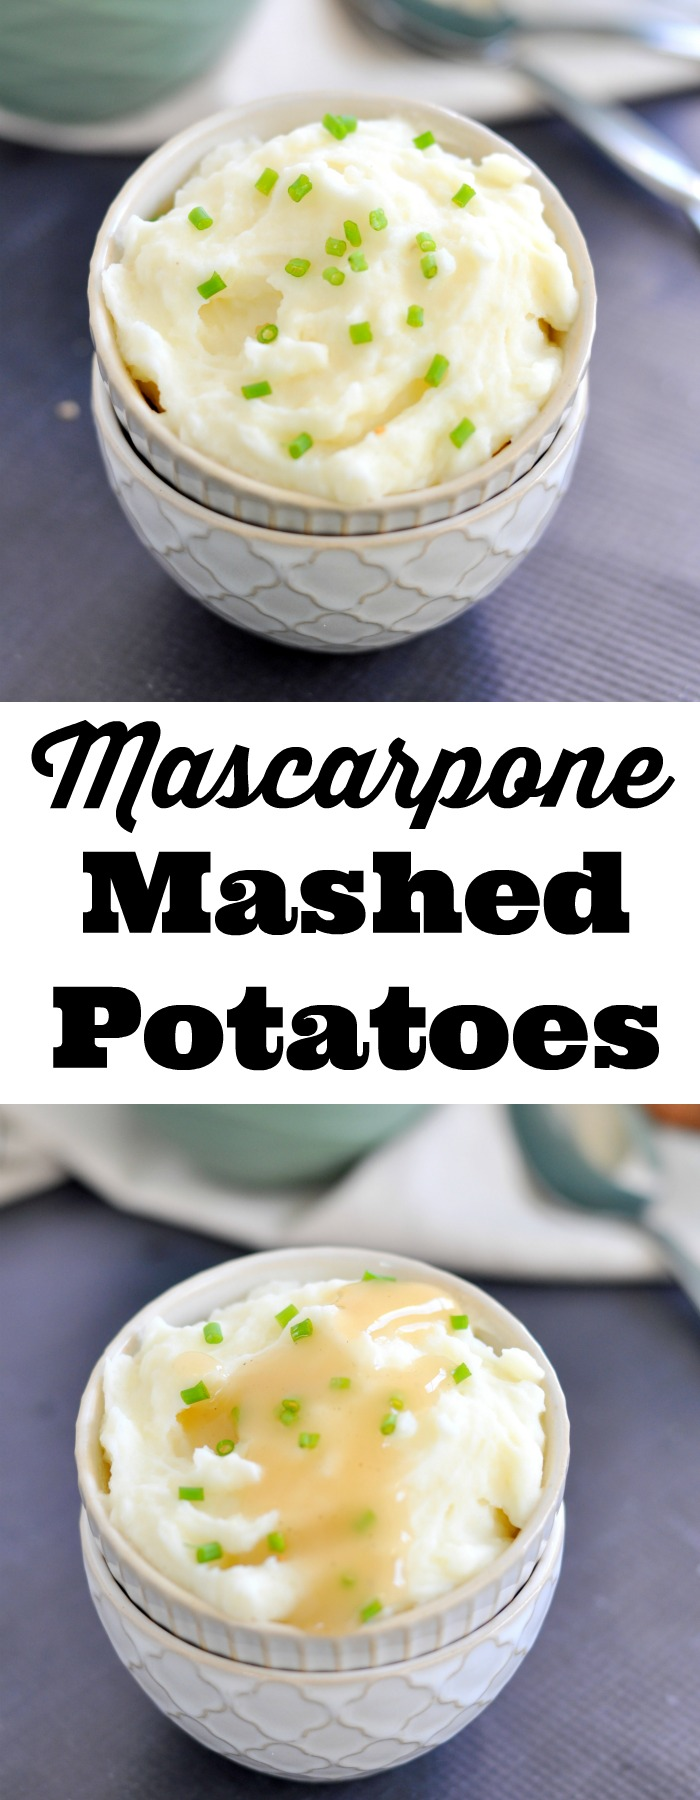 Add a little extra creaminess to a side favorite when you make mascarpone mashed potatoes!